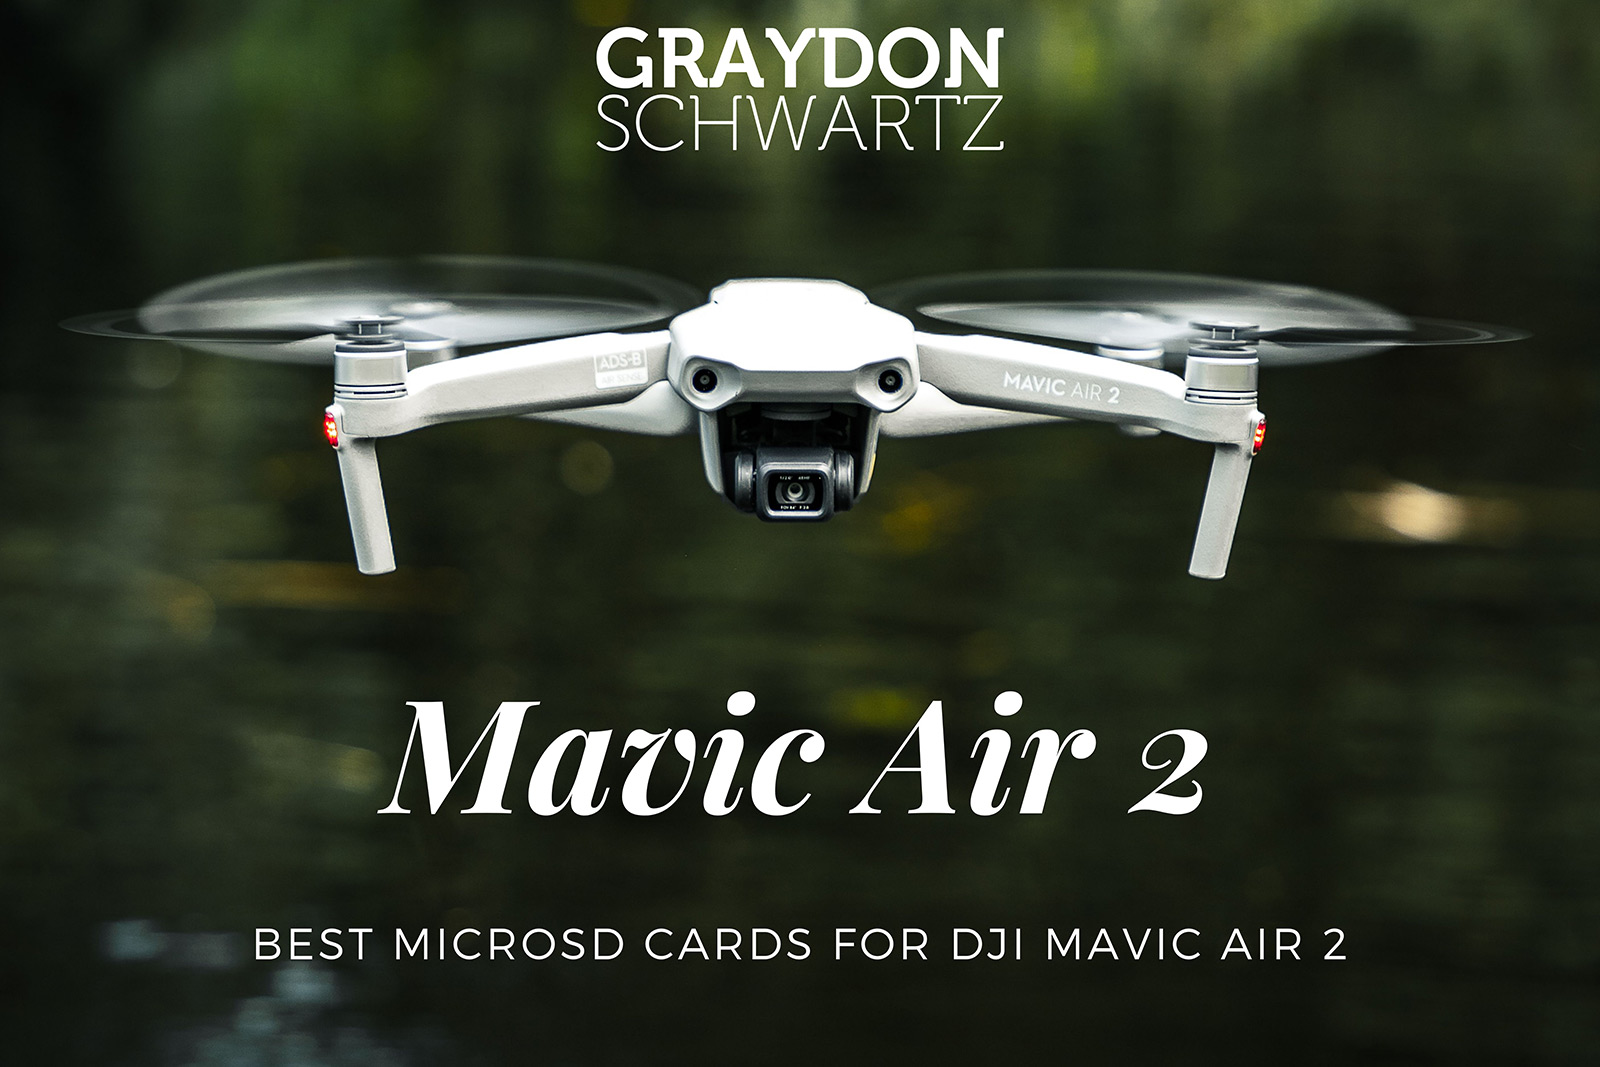 Best MicroSD Cards for DJI Mavic Air 2